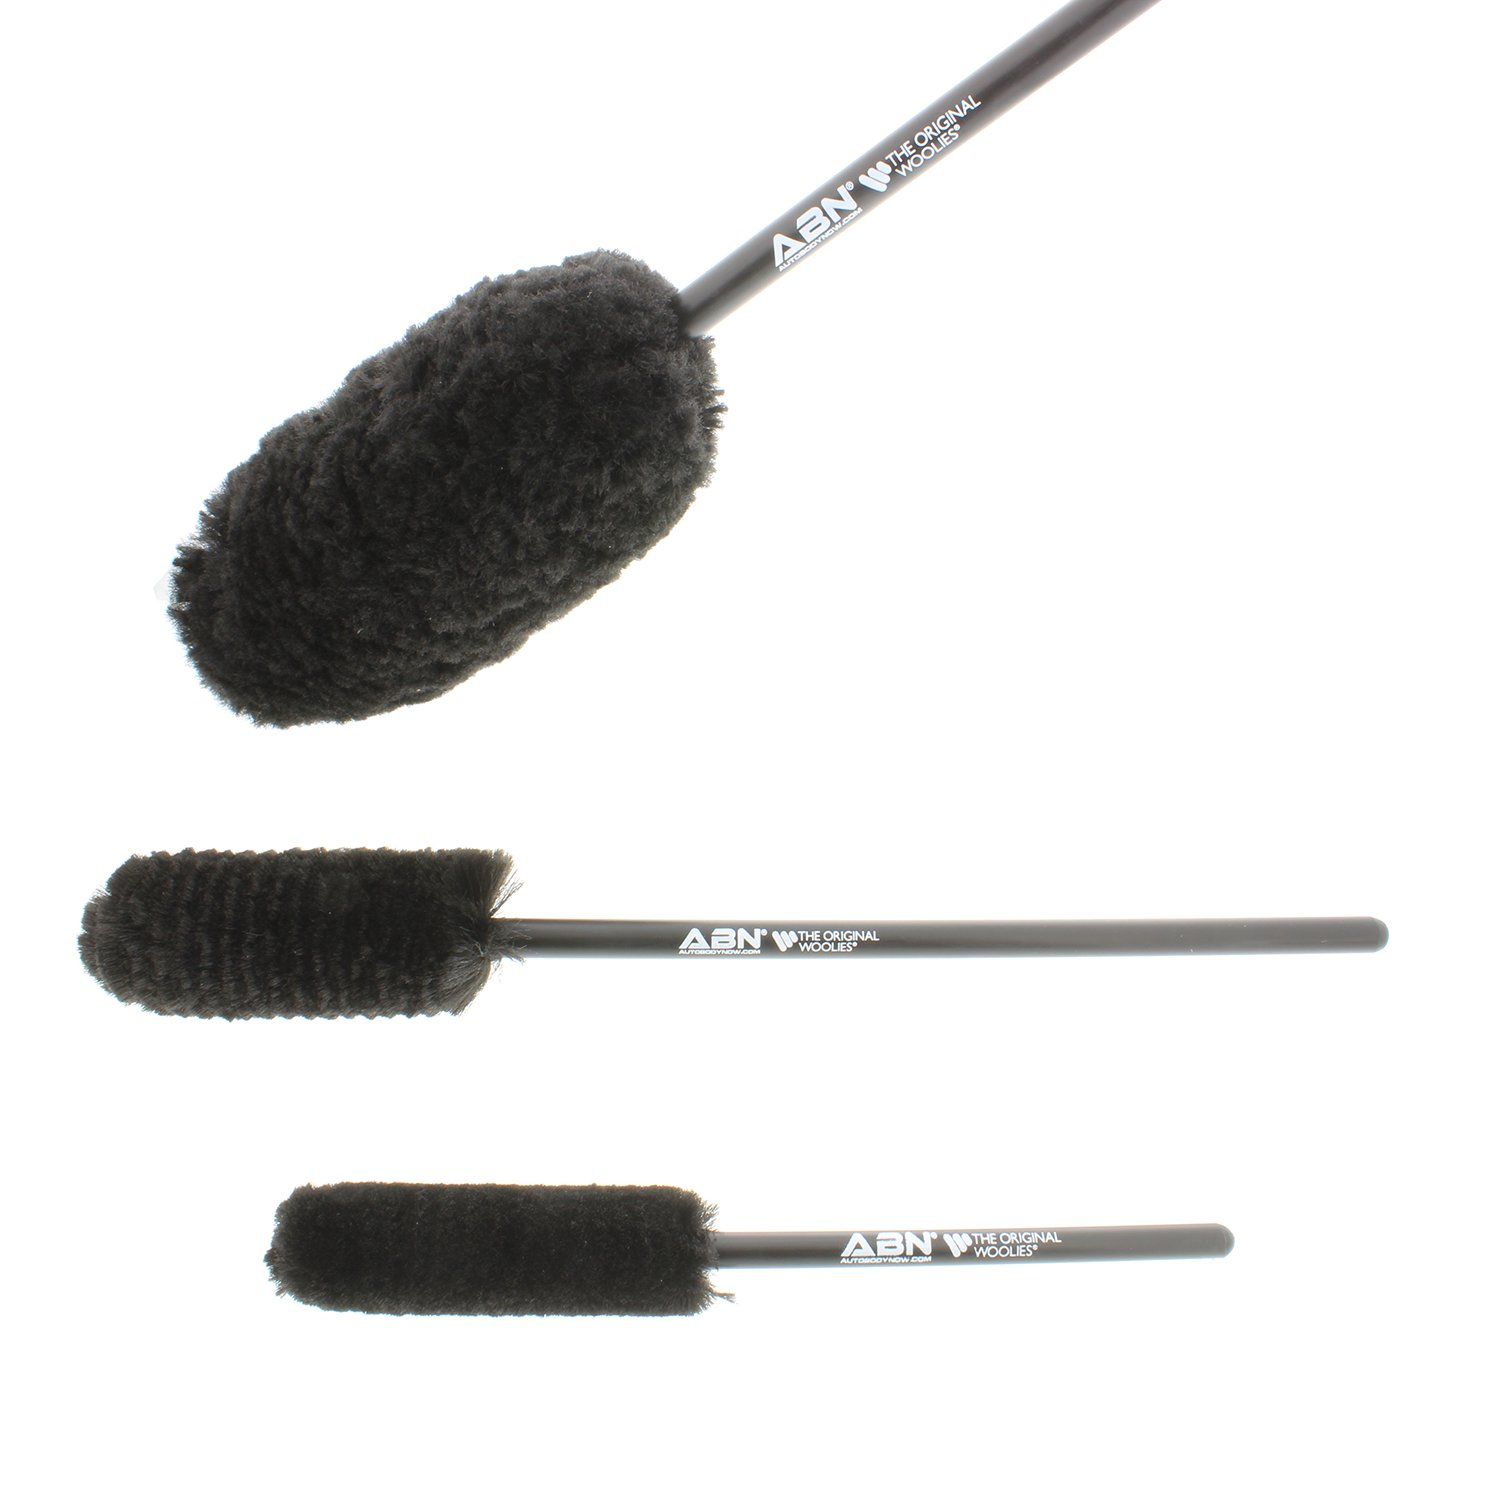 ABN Car Wheel Rim Cleaning 3-Piece Kit – Wheel Woolies Brush Stick Tool – Tire Woolie – Wooly Wand Set (3 Brushes) by ABN (Image #3)